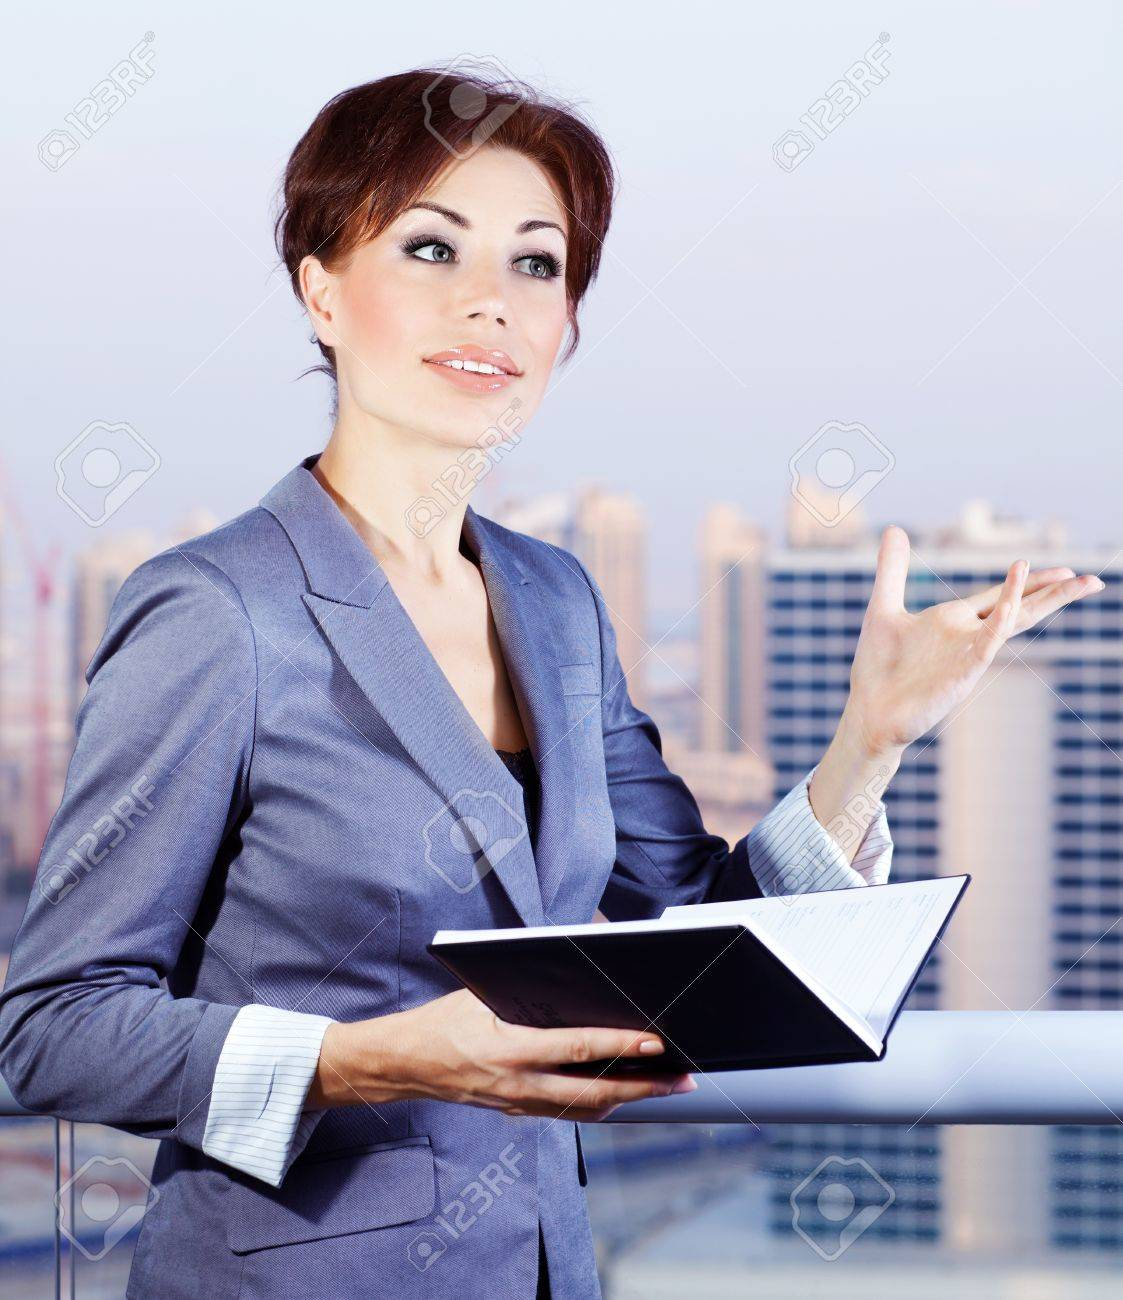 successful businessw making a deal young smart office worker stock photo successful businessw making a deal young smart office worker w over blue sky and city background business lifestyle concept